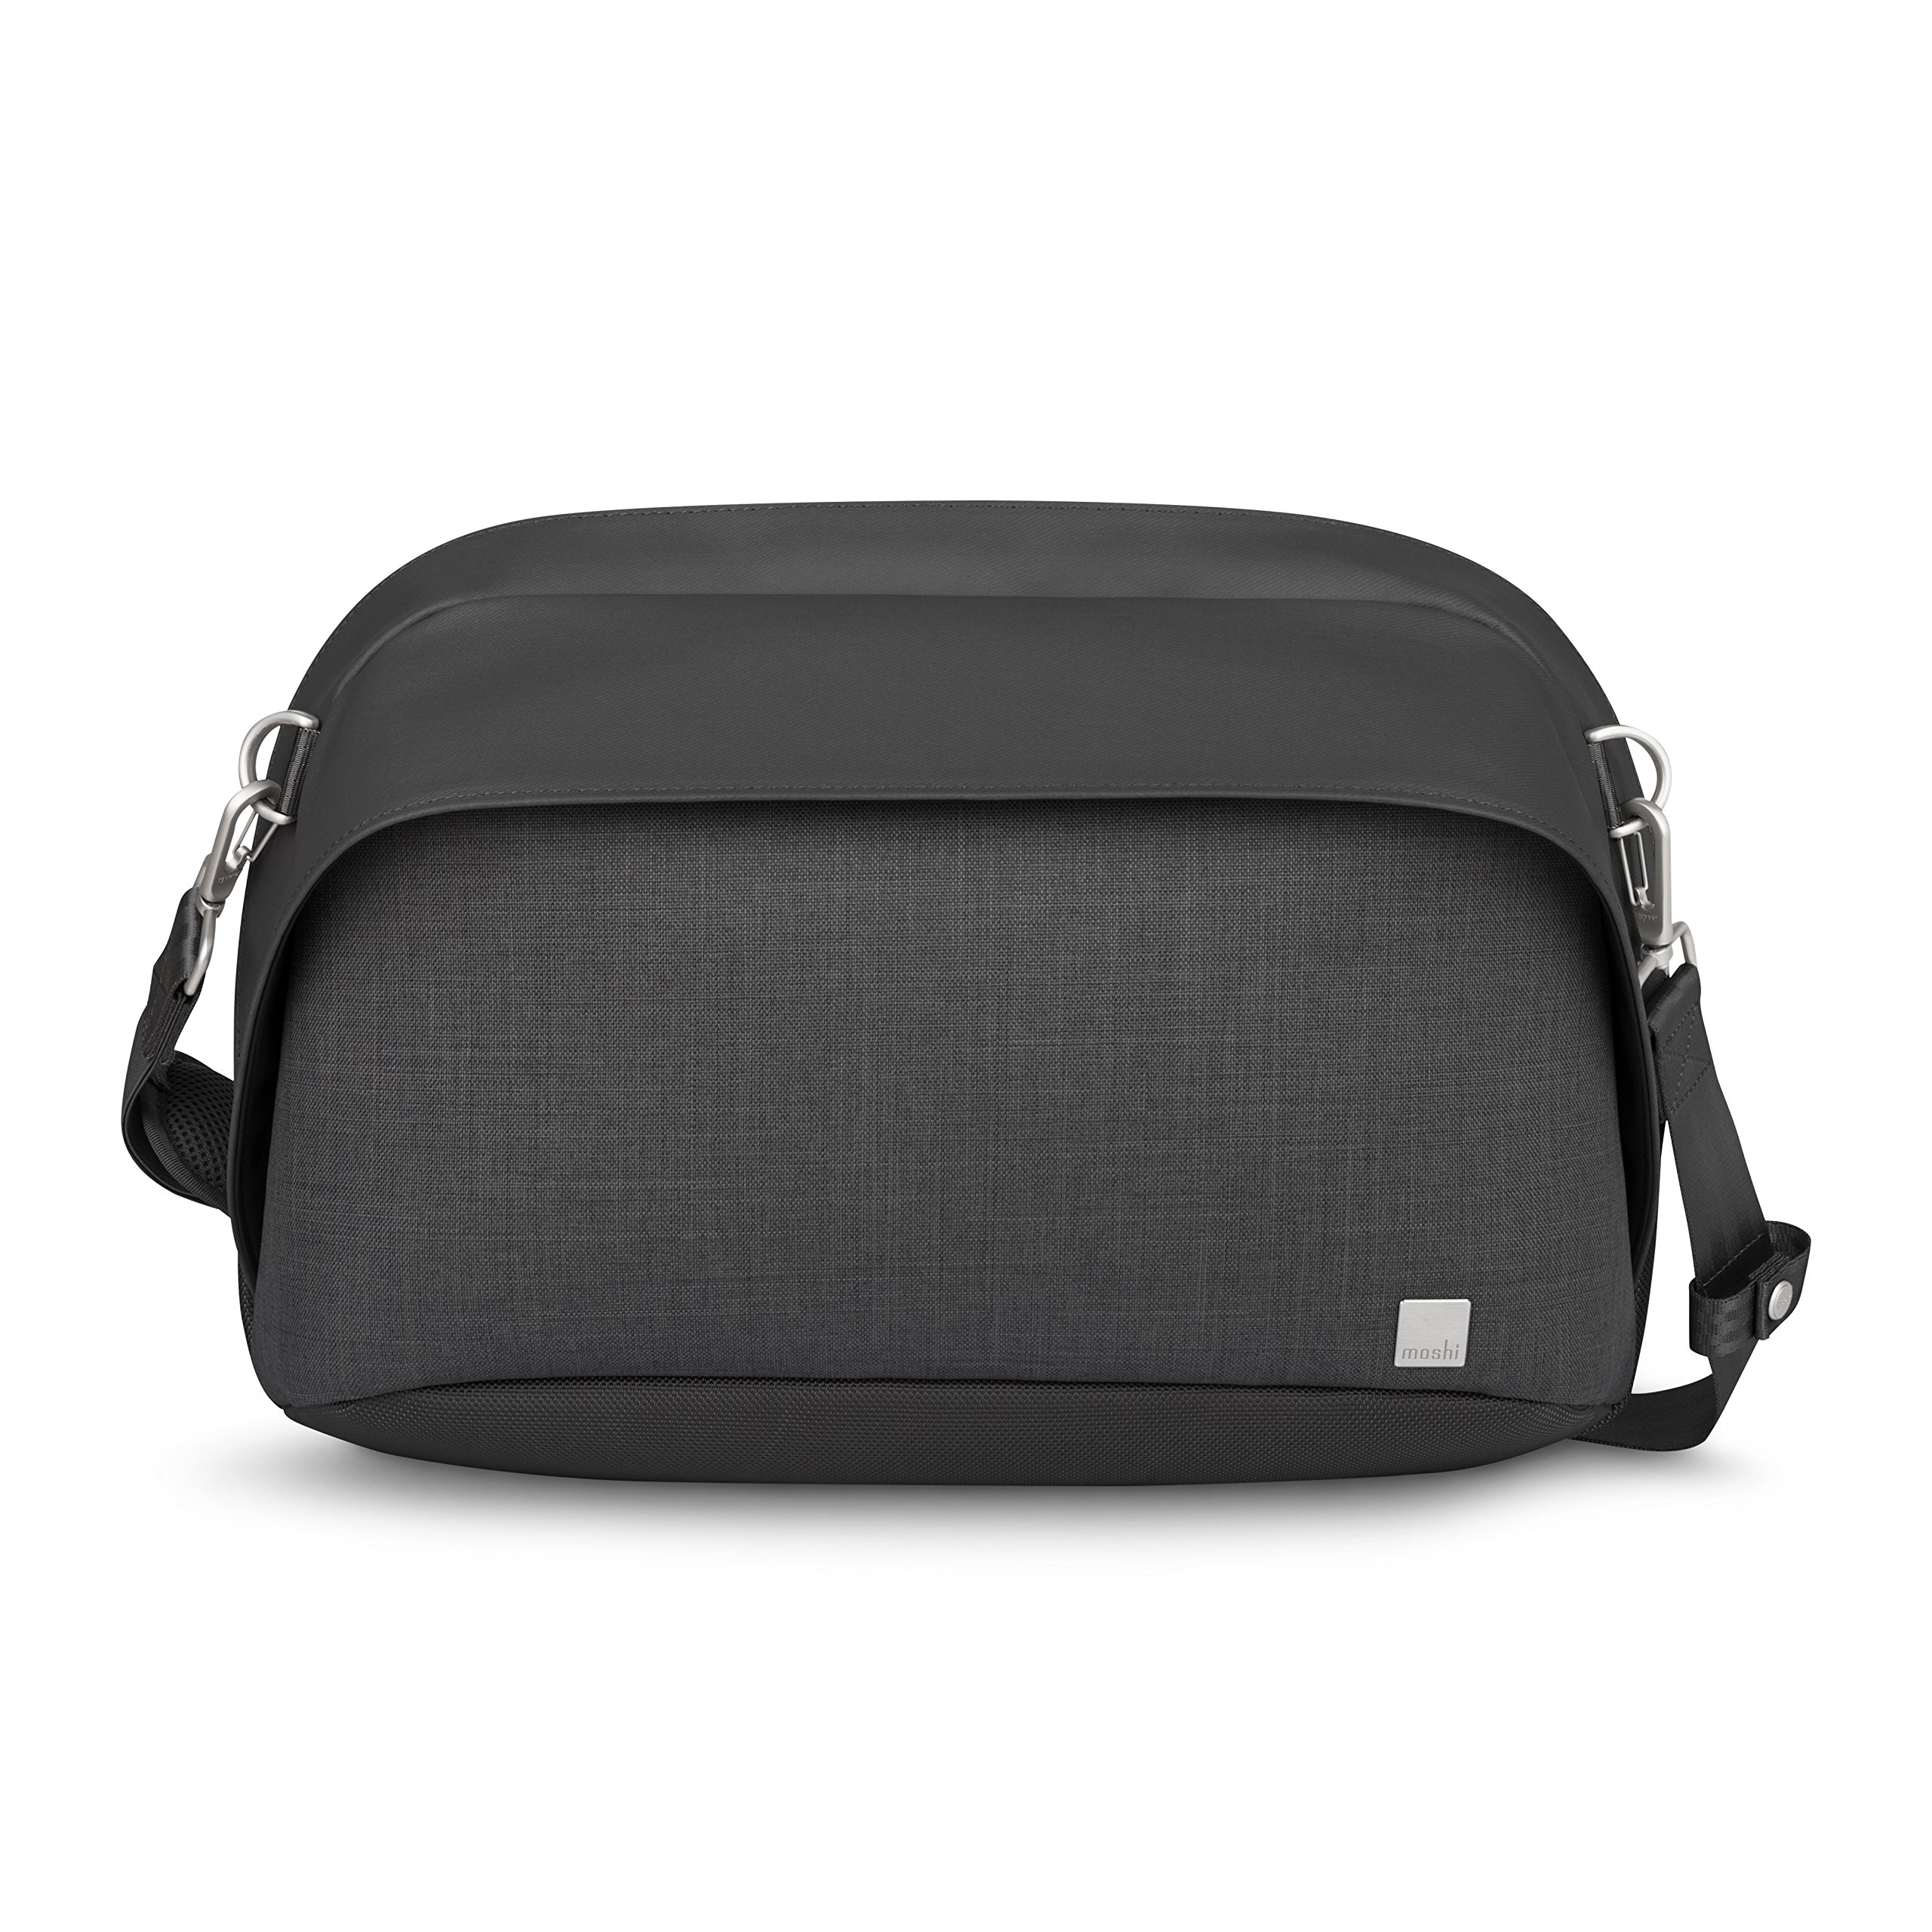 Moshi Tego anti-theft Sling Messenger (Charcoal Black)